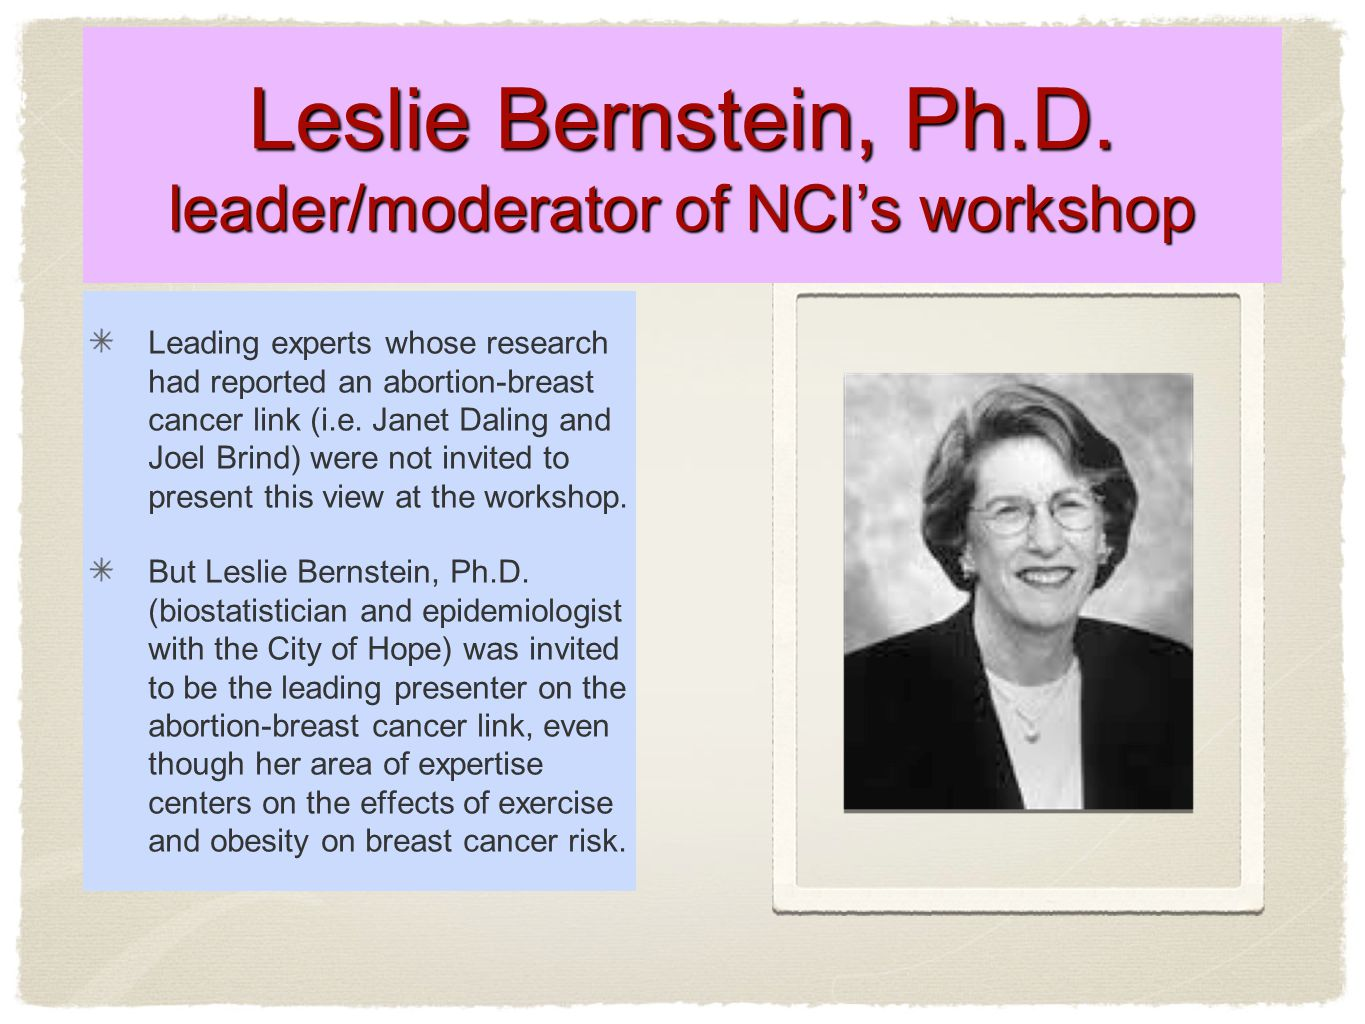 Leslie Bernstein, Ph.D. leader/moderator of NCI's workshop Leading experts whose research had reported an abortion-breast cancer link (i.e. Janet Dali